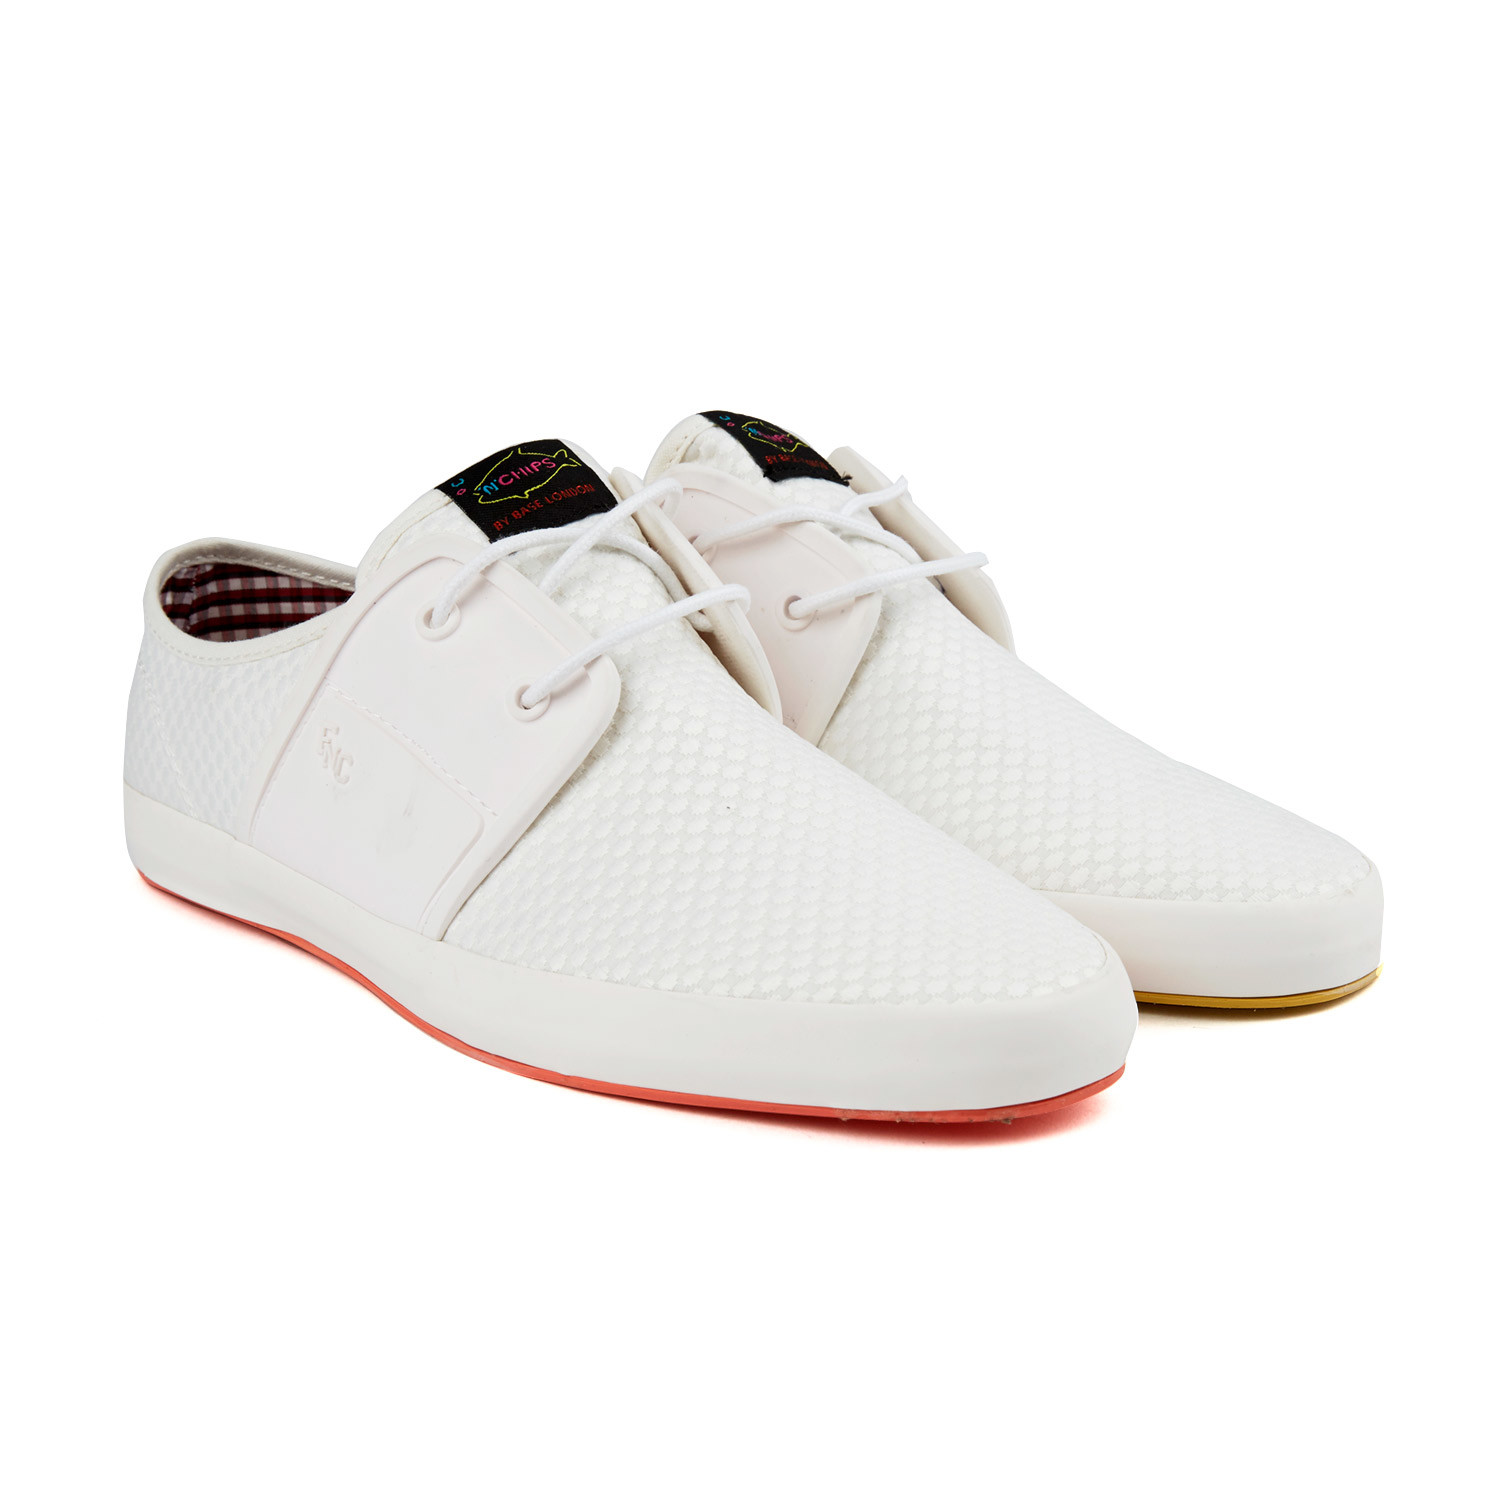 Spam 2 sneaker white euro 40 fish 39 n 39 chips for Fish n chips shoes